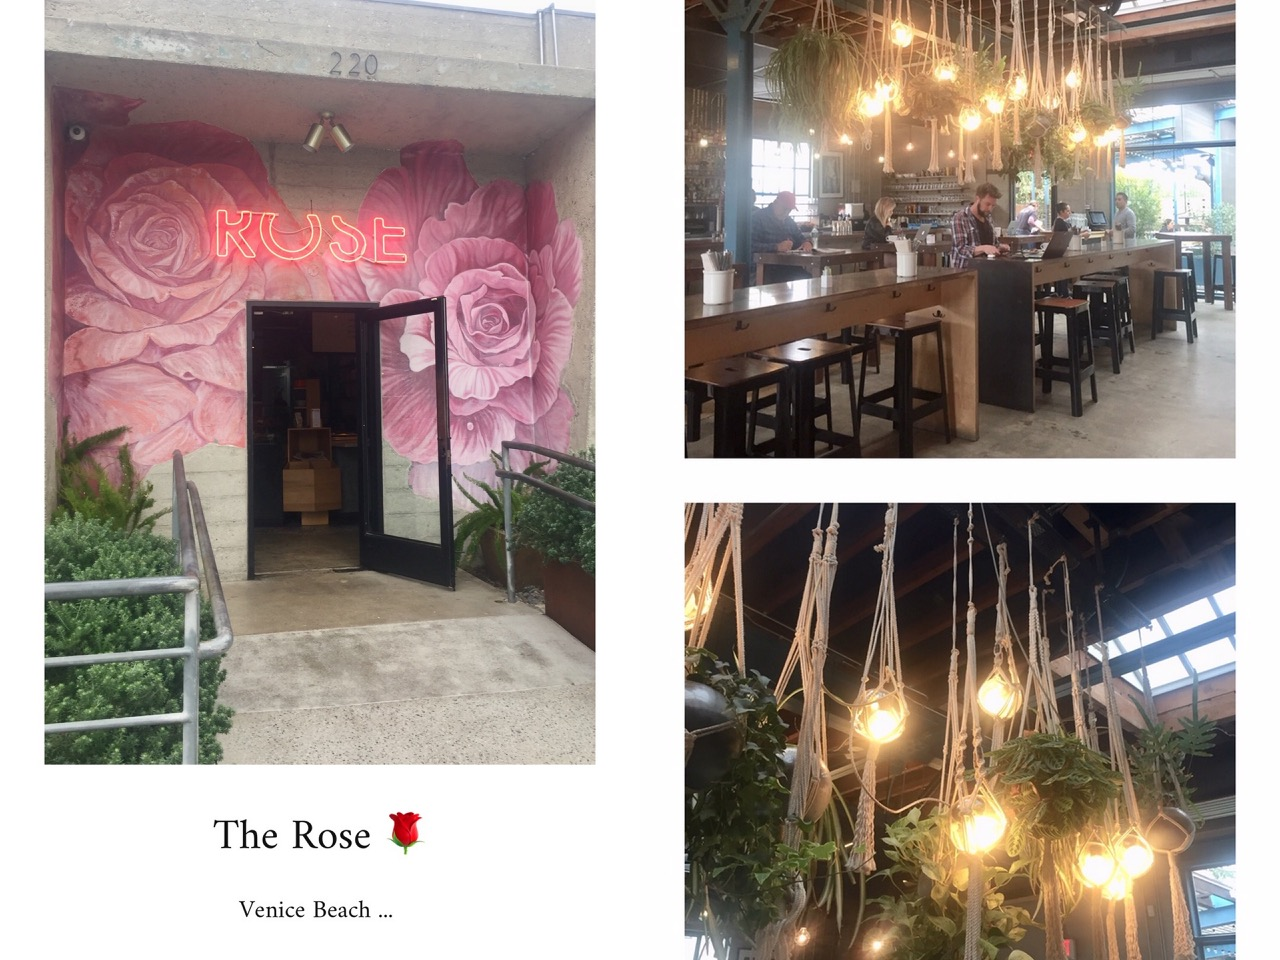 the rose,café,restaurant,coffee shop,venice beach,californie,travel,voyage,travel guide,aliceetfantomette,aliceetfantometteencalifornie,clareV,clare vivier,shopping,sacs,fashion,accessories